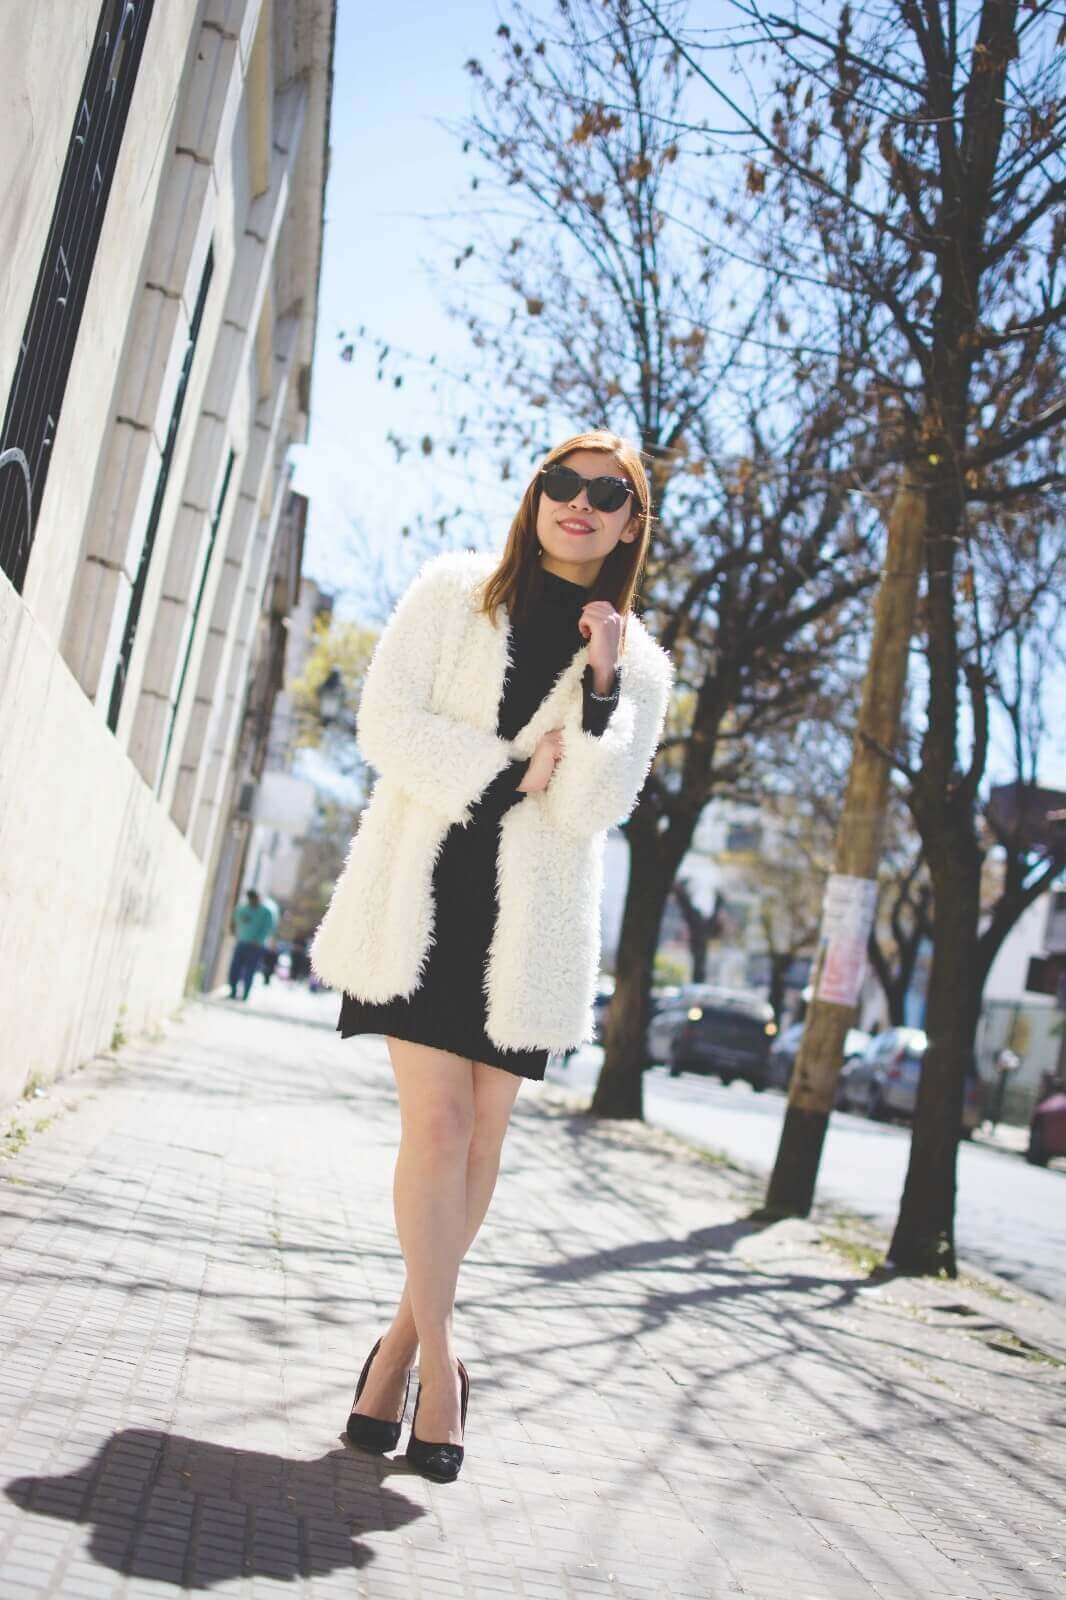 white-fluffy-coat-newchic-fall-little-black-dress-zaful-shoes-gamiss-sunglasses-deborah-ferrero-style-by-deb13